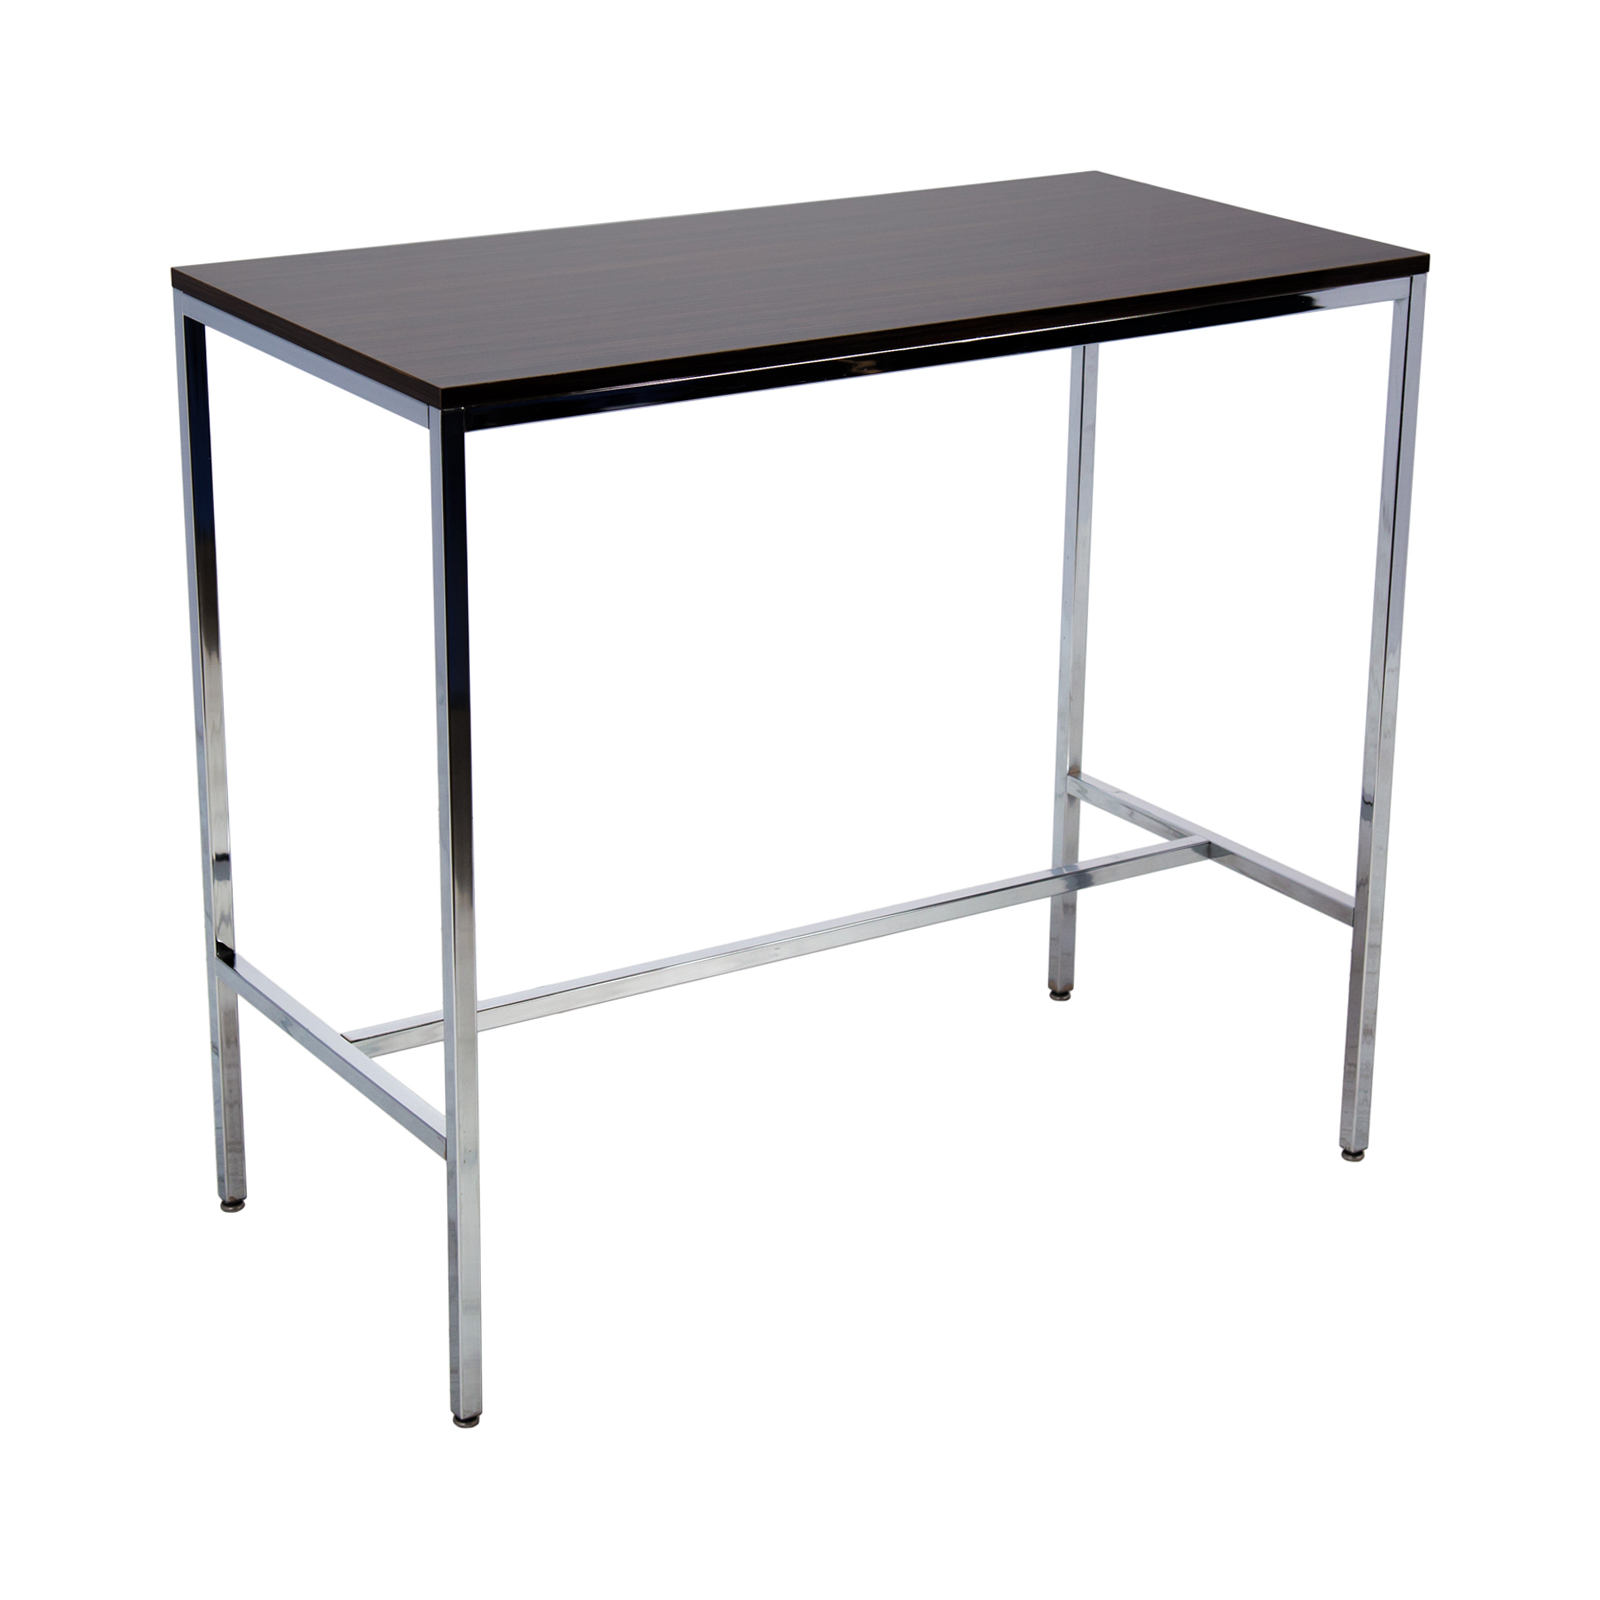 Portable bar table rental pin by fontenette on for Table rentals